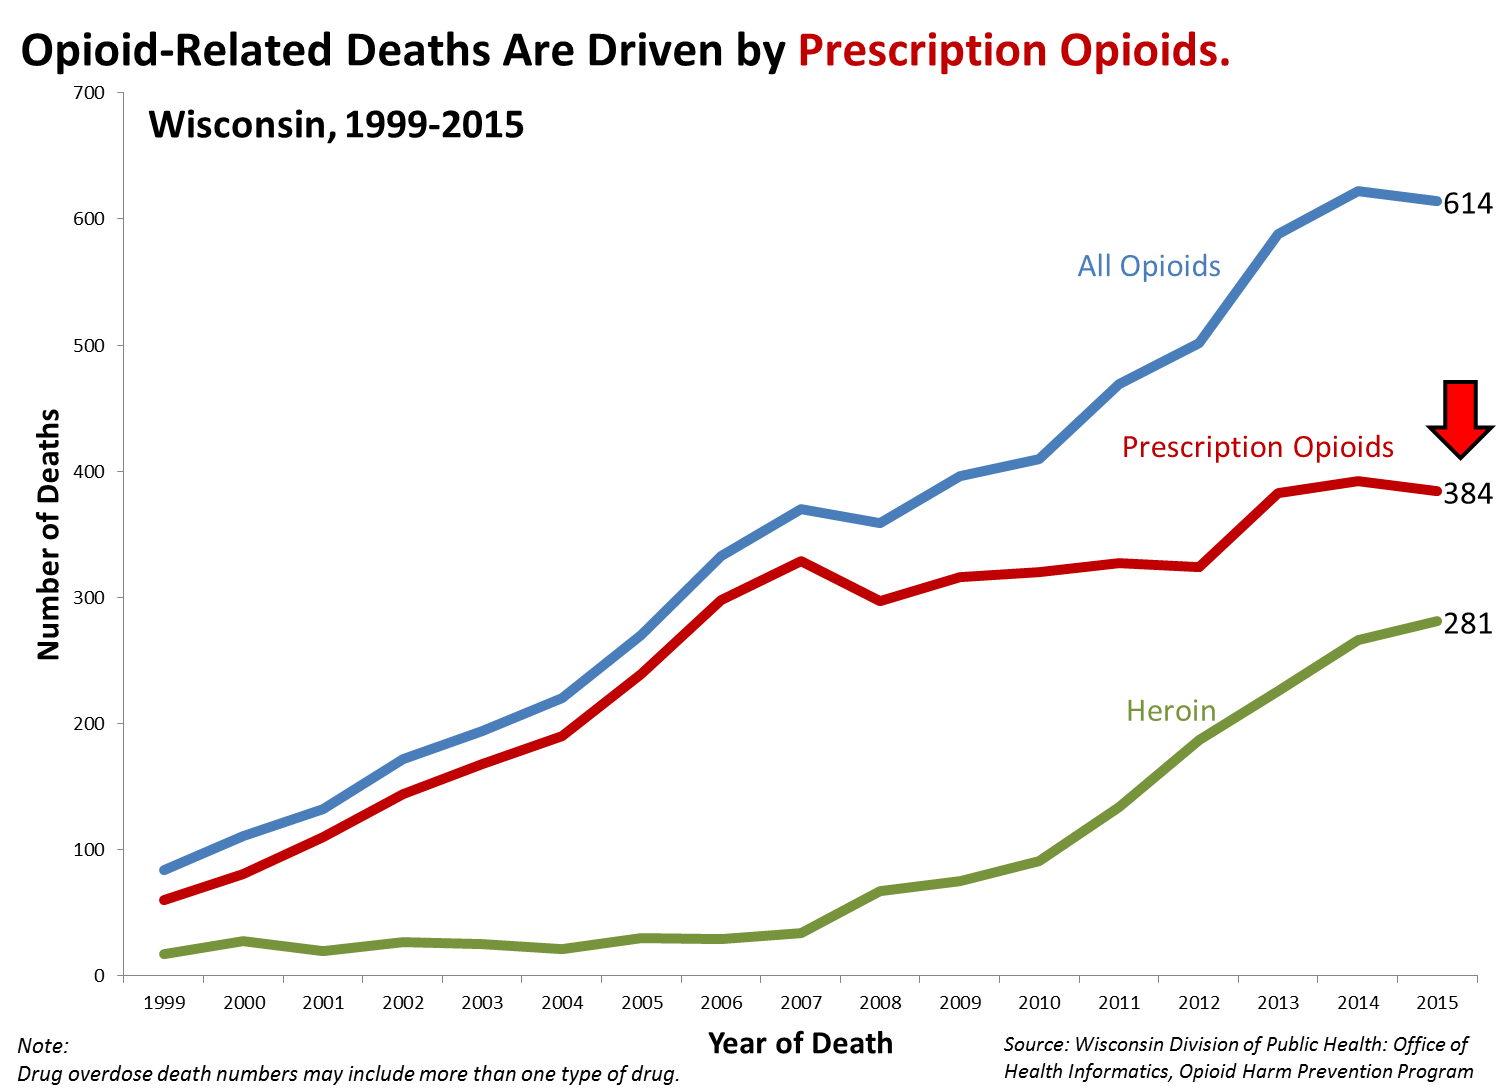 Opioid-related deaths are driven by prescription opioids